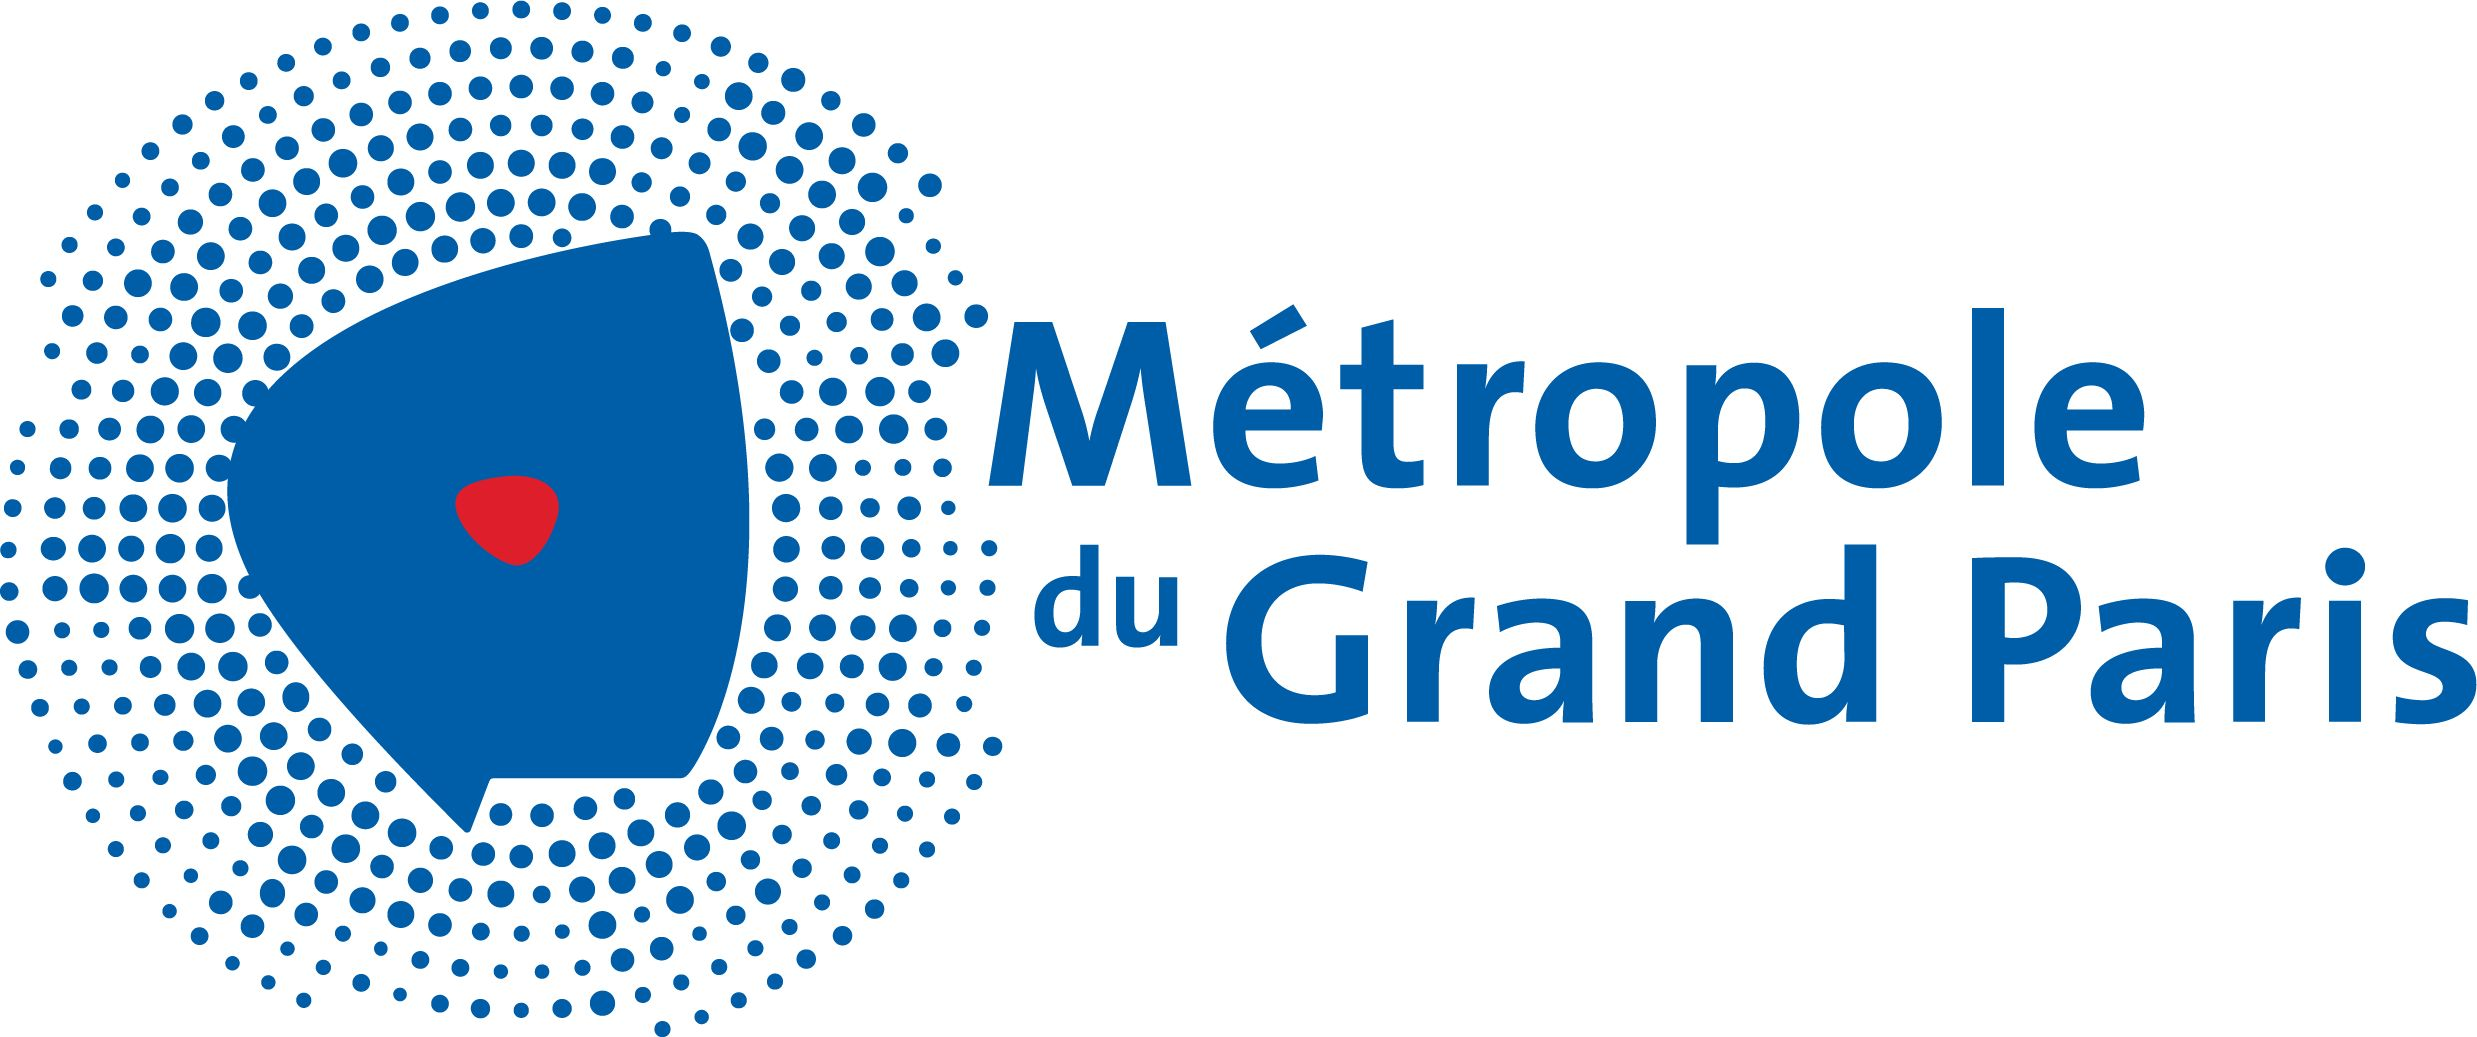 Métropole du Grand Paris